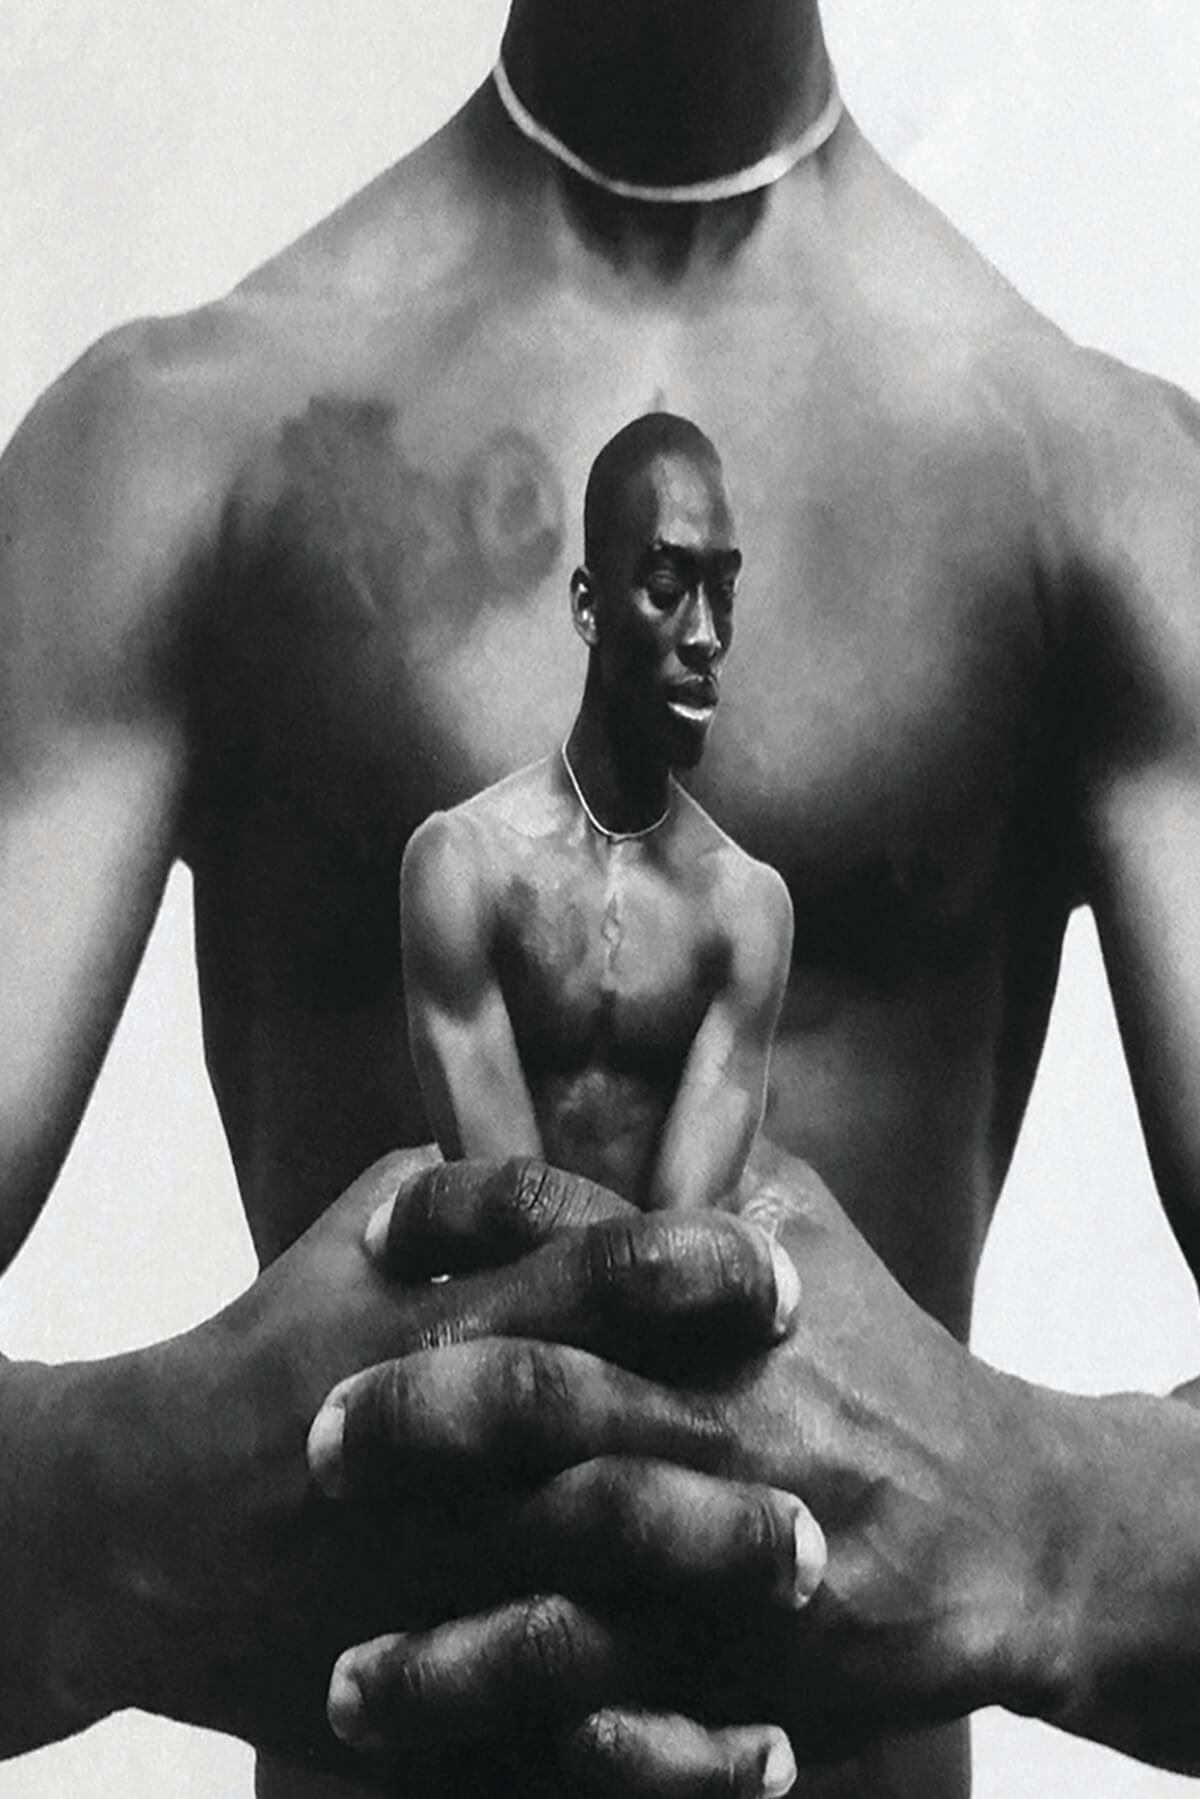 A black and white photo collage. The bare torso of a black man extends his arms forward and clenches his hands together. Caught within those hands is a smaller image of the shirtless black man, his arms constrained by the large hands within which he's held.